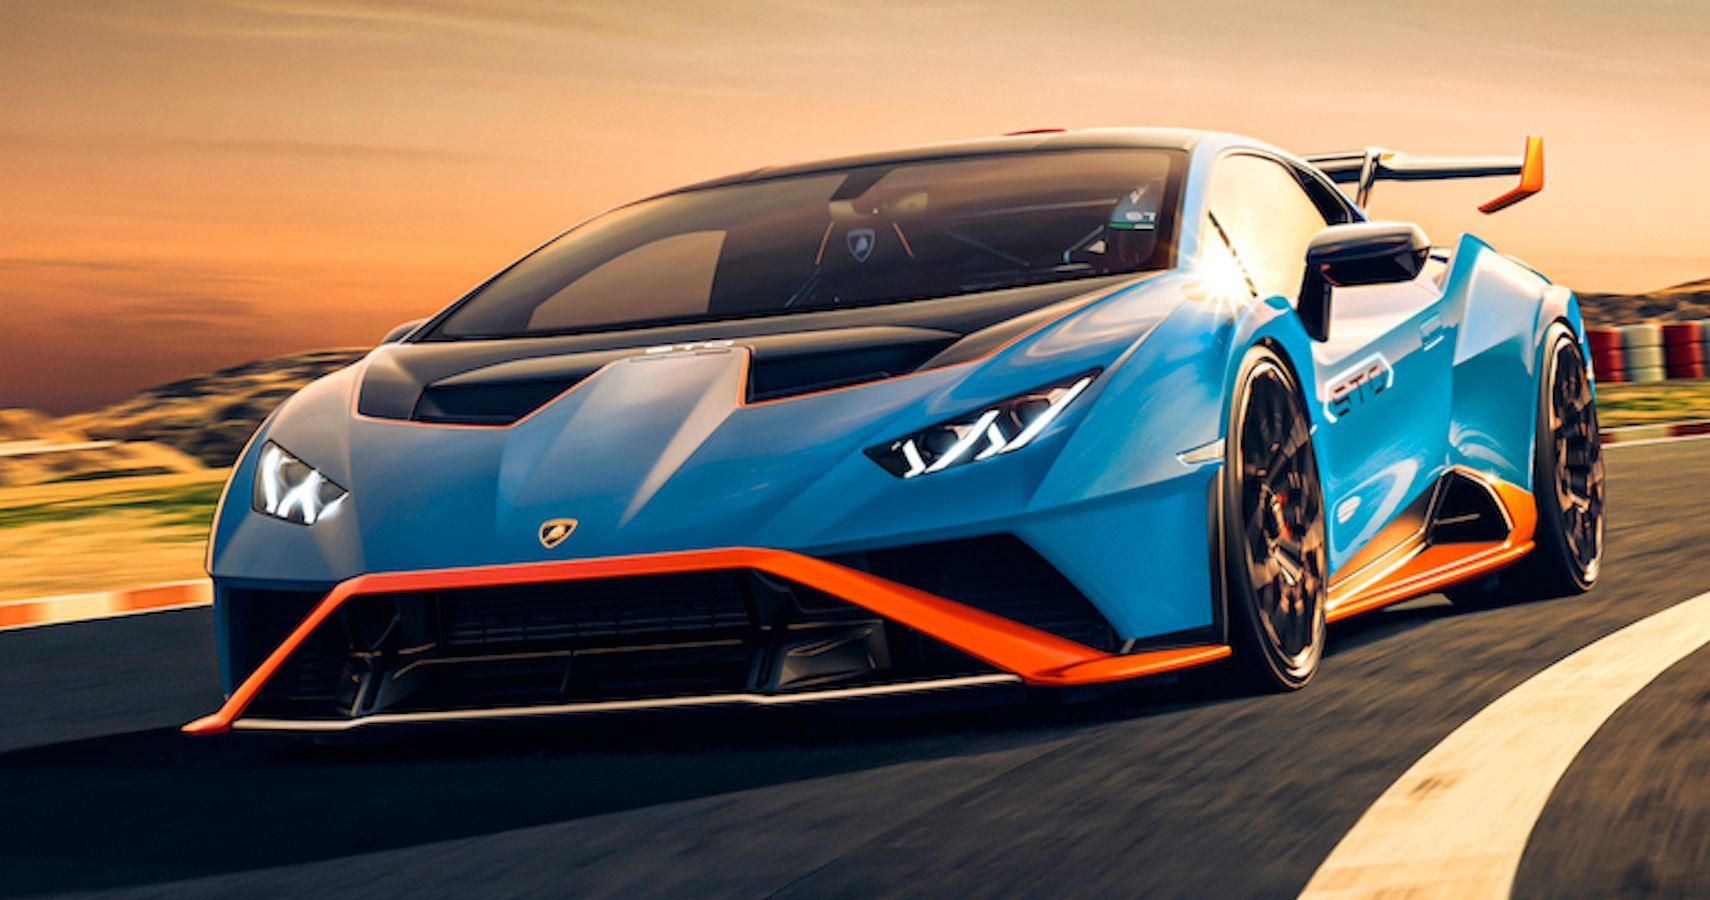 Lamborghini Reveals Huracan STO: A Homologation Special With 620 Horsepower